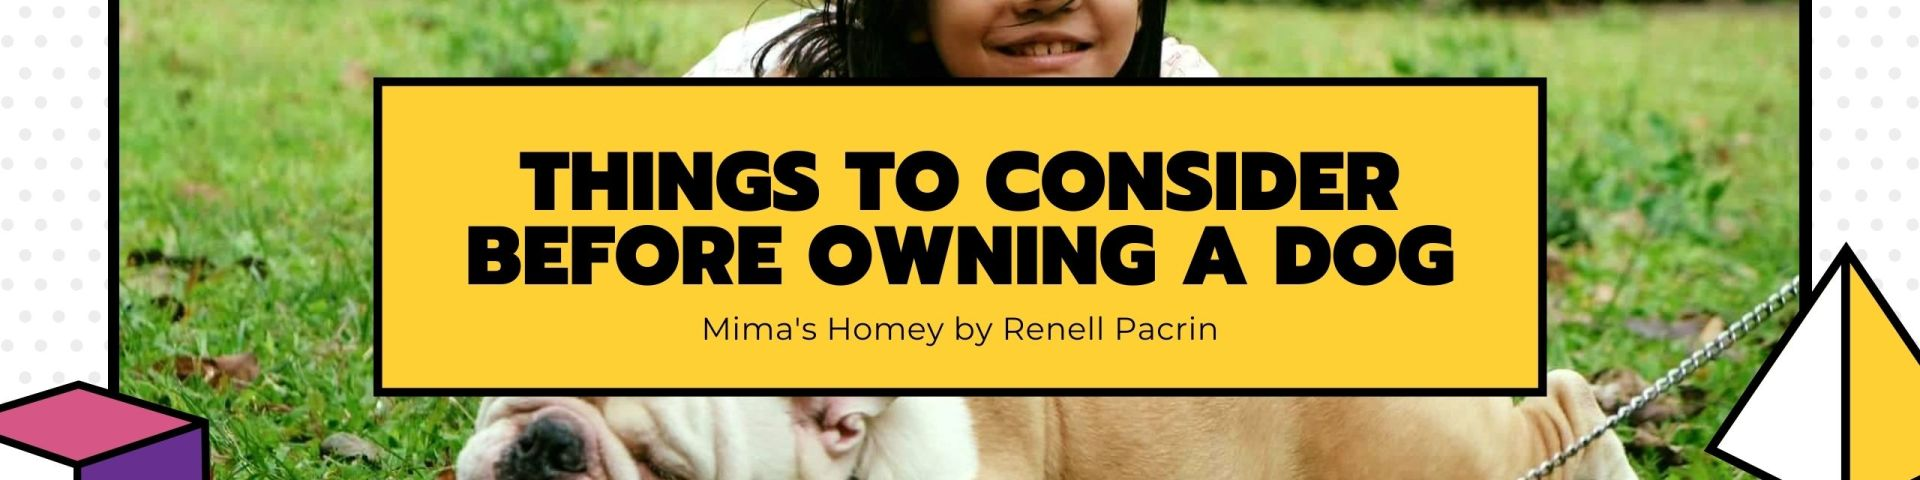 things to consider before owning a dog